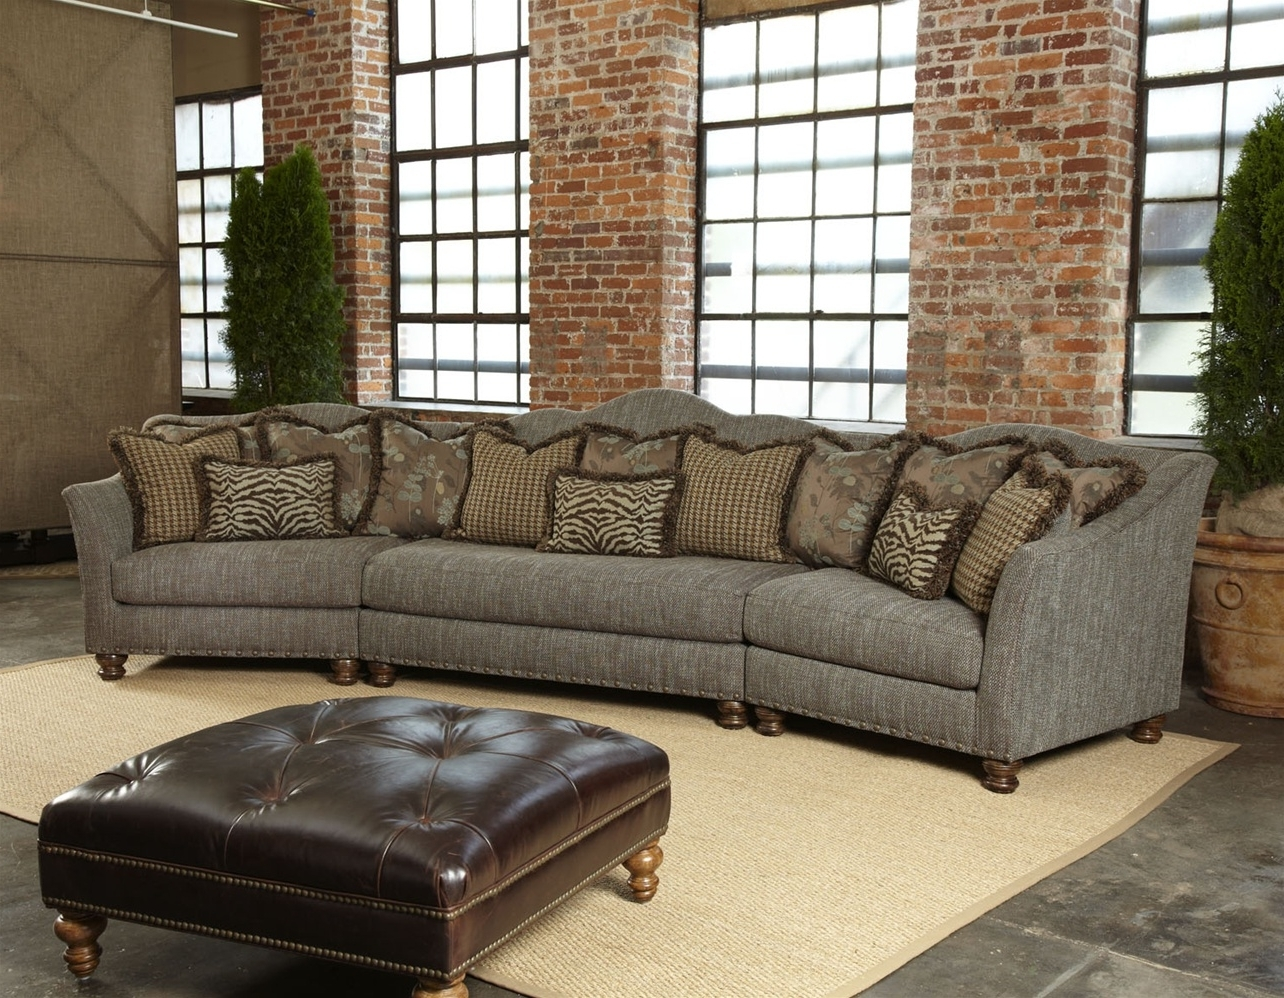 Good Quality Sectional Sofas – Cleanupflorida With Best And Newest Quality Sectional Sofas (Gallery 5 of 20)